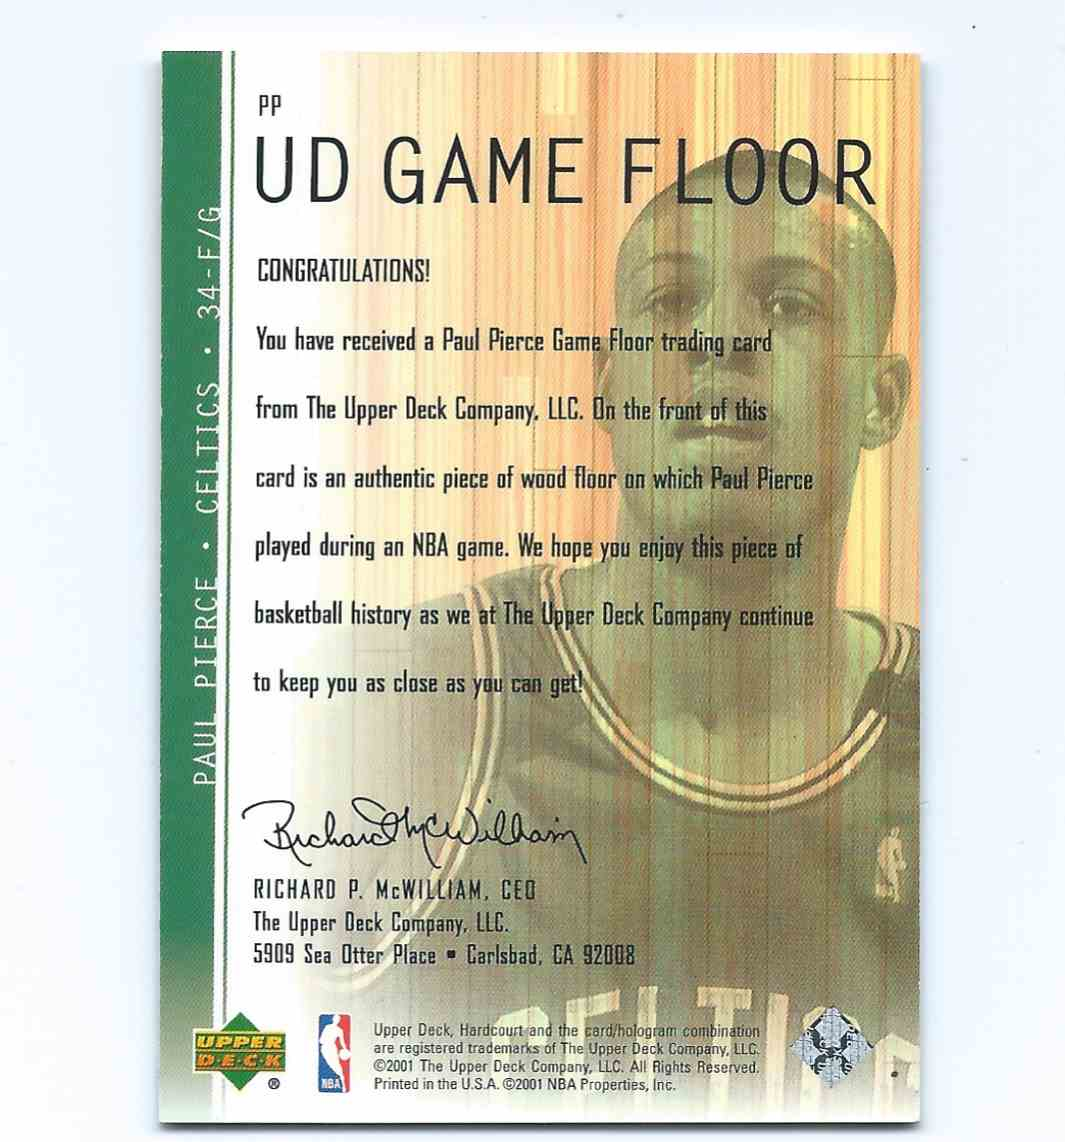 2001-02 Upper Deck Hardcourt UD Game Floor Paul Pierce #PP card back image